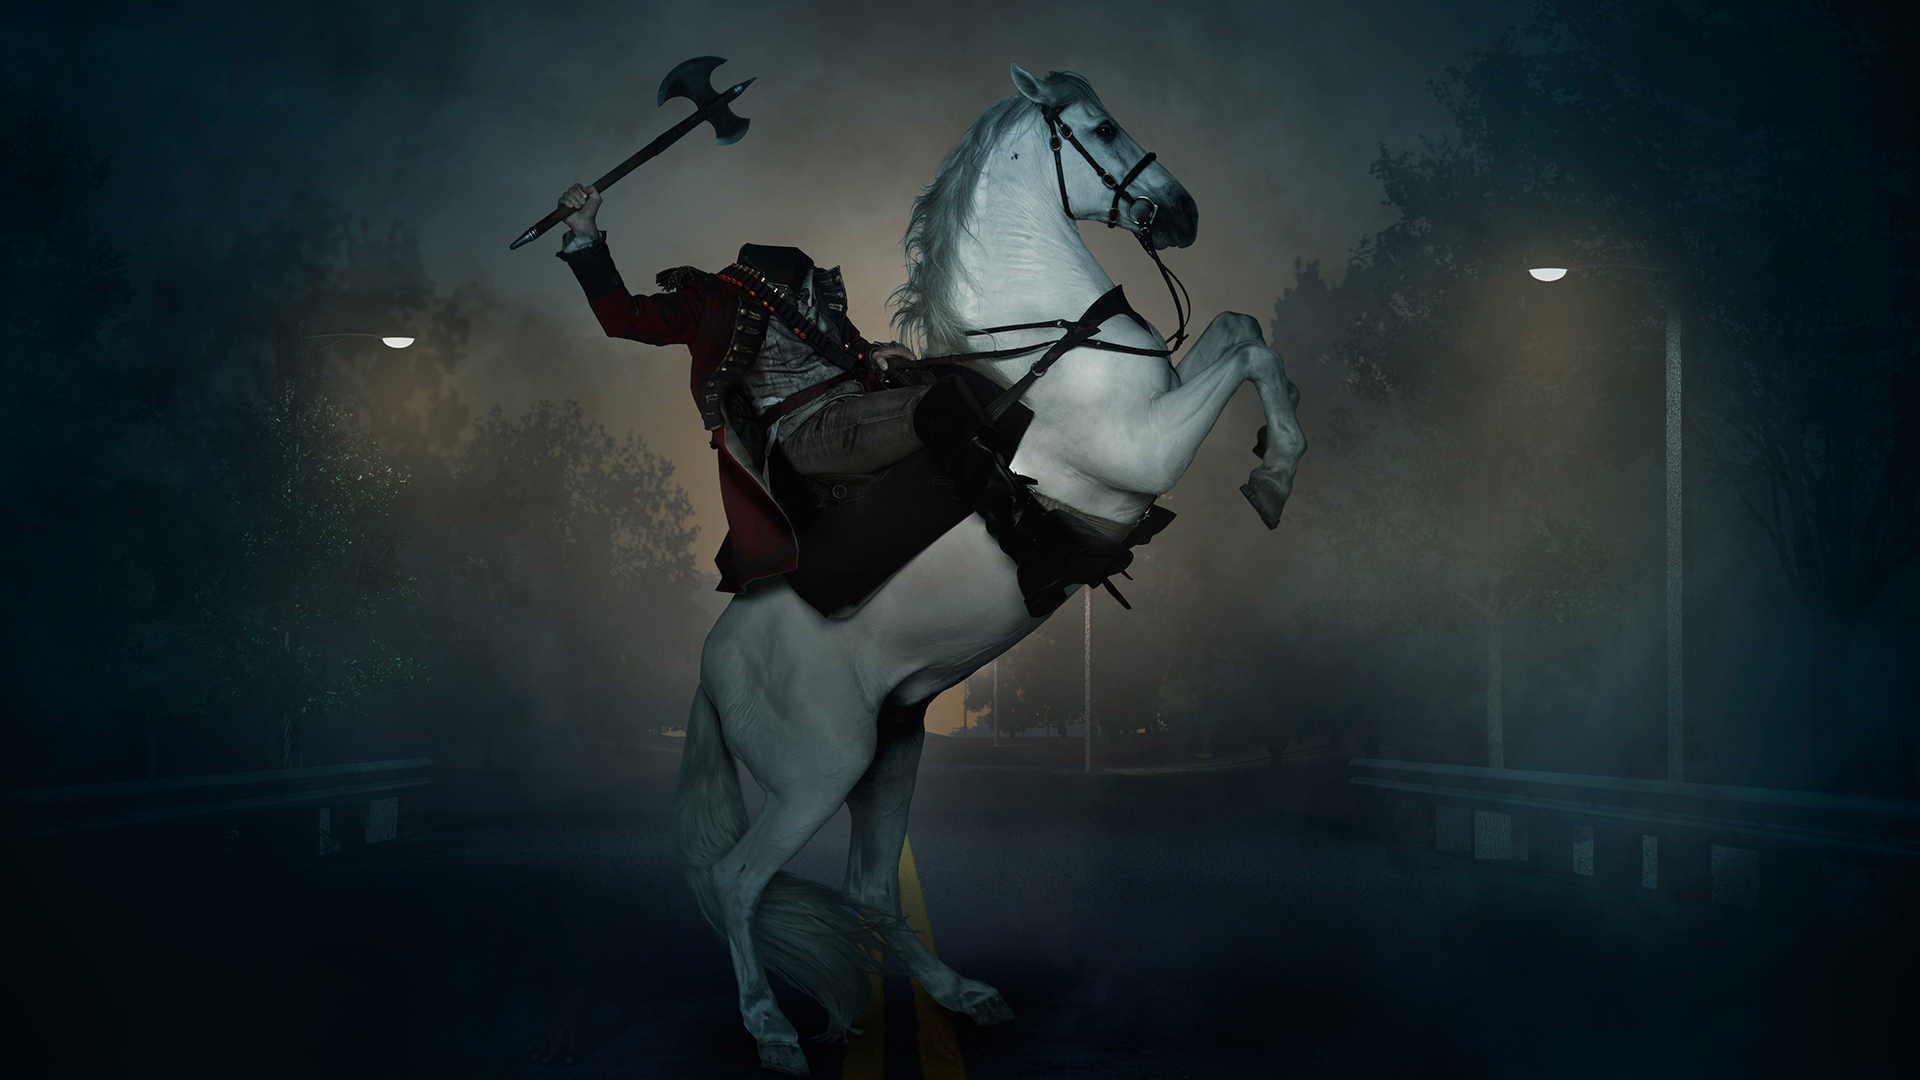 Sleepy Hollow Season 2 Trailer